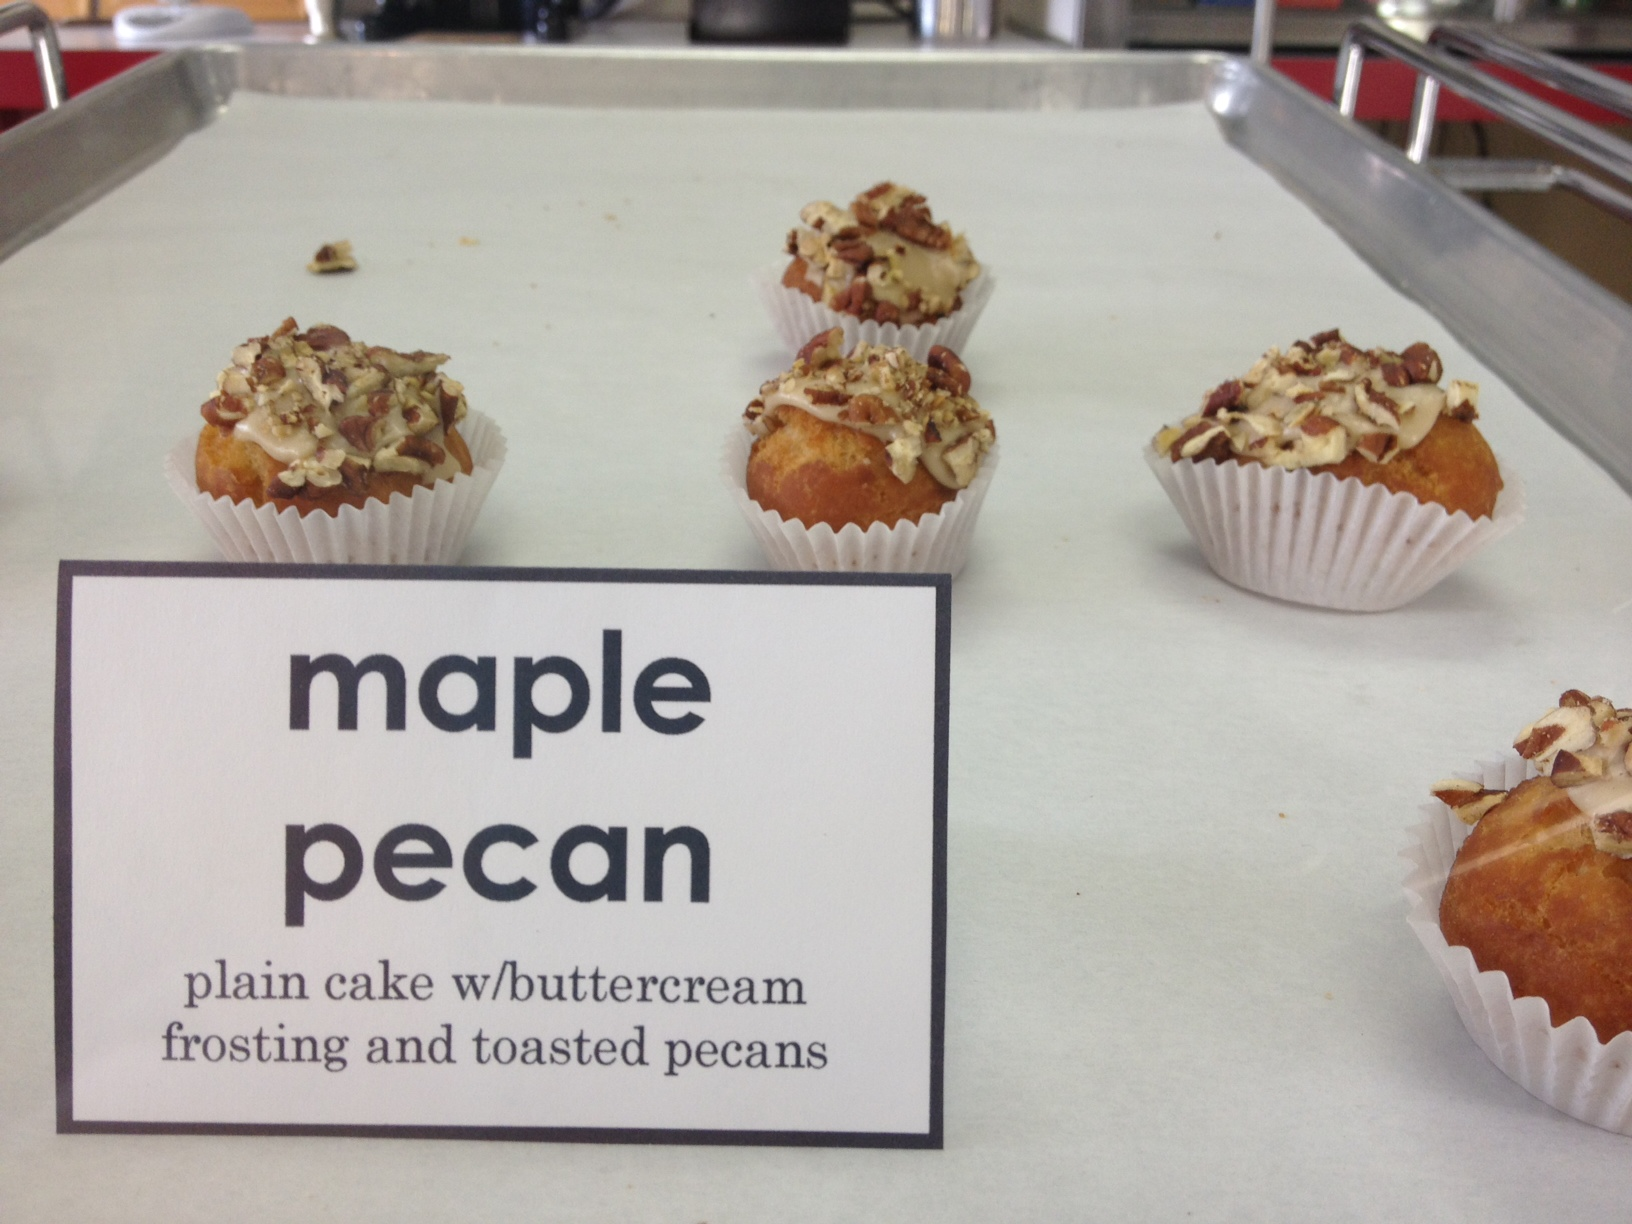 Mini maple pecan doughnuts at Donut Savant | Flickr - Photo Sharing!